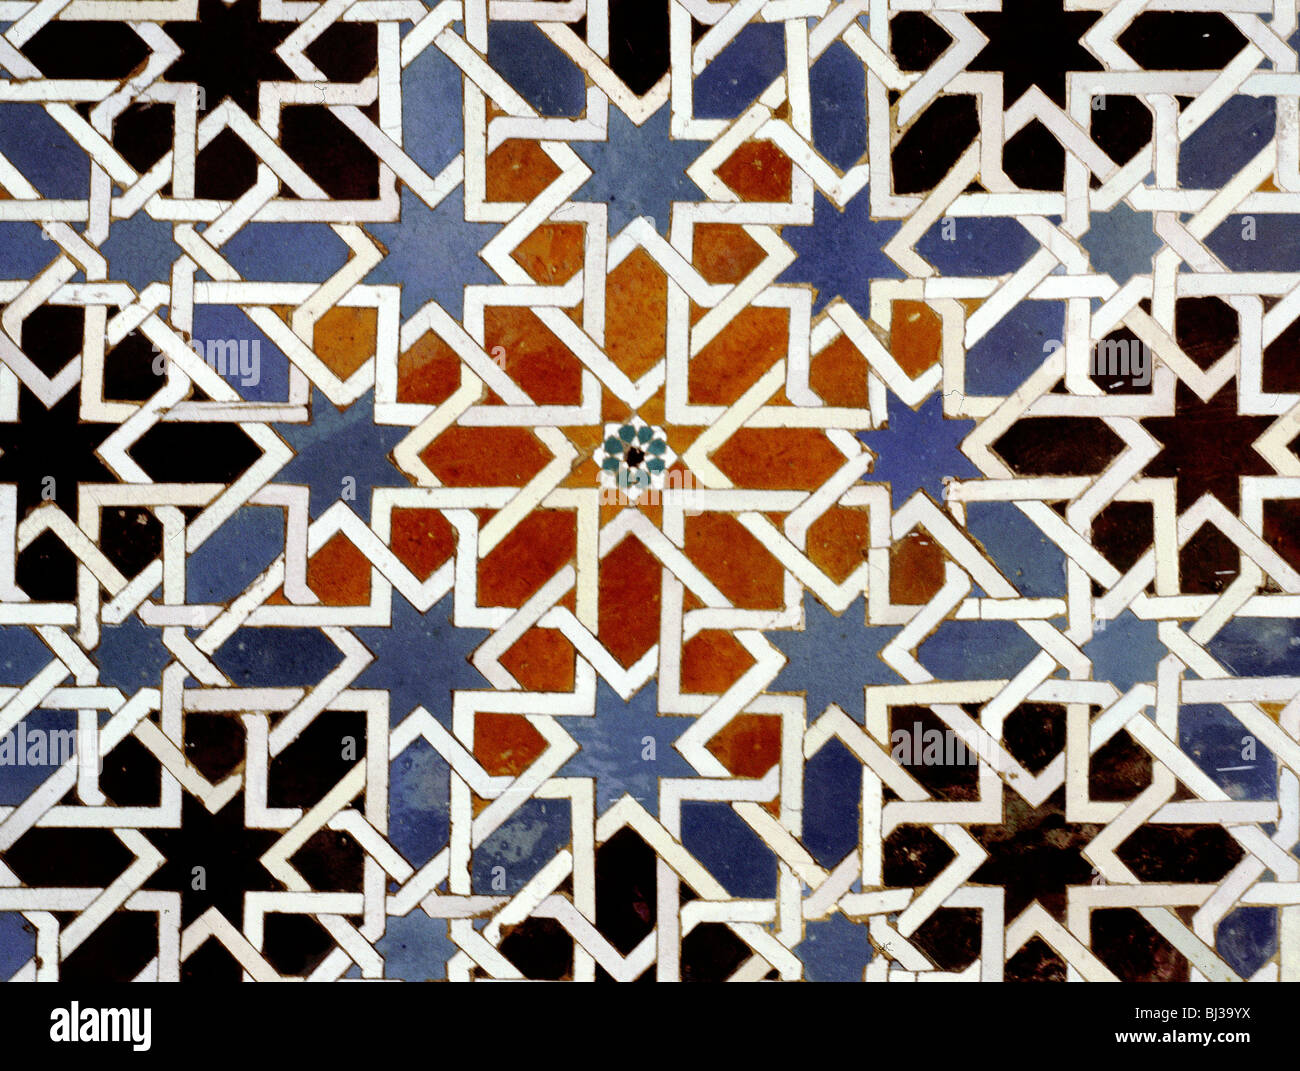 Ceramic tiles from the Alcazar of Seville, Andalusia, Spain, 14th ...